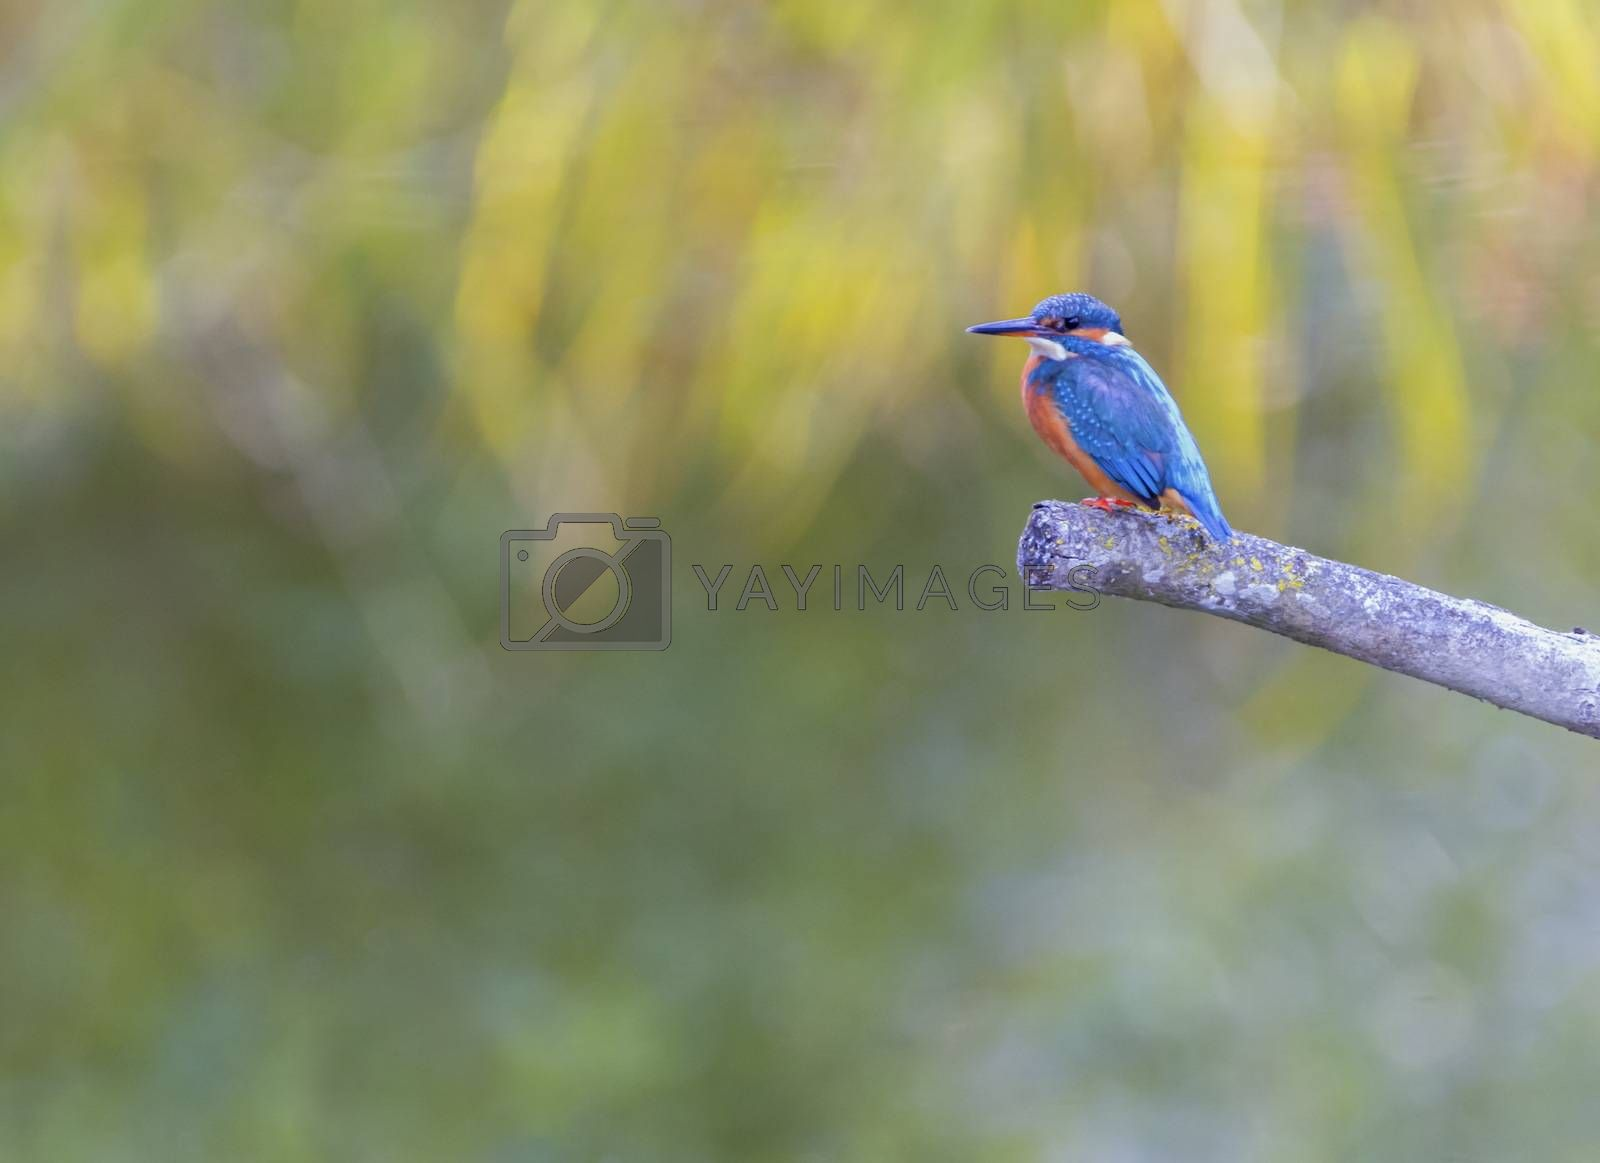 Eurasian, river or common kingfisher, alcedo atthis perched on a branch by day, Neuchatel, Switzerland